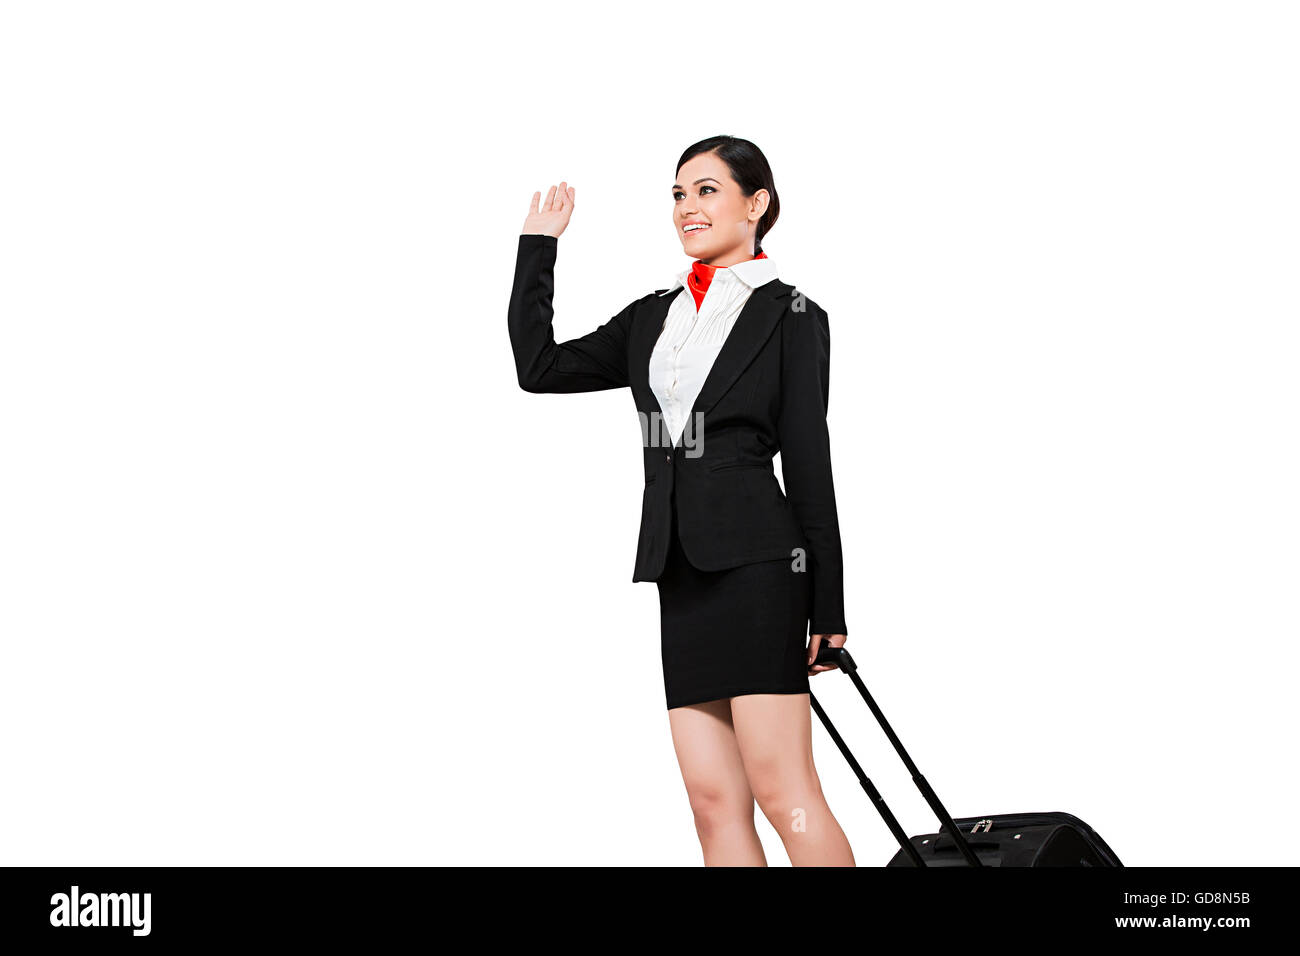 1 Indian Adult Woman Air Hostess holding Suitcase standing Waving Hands - Stock Image